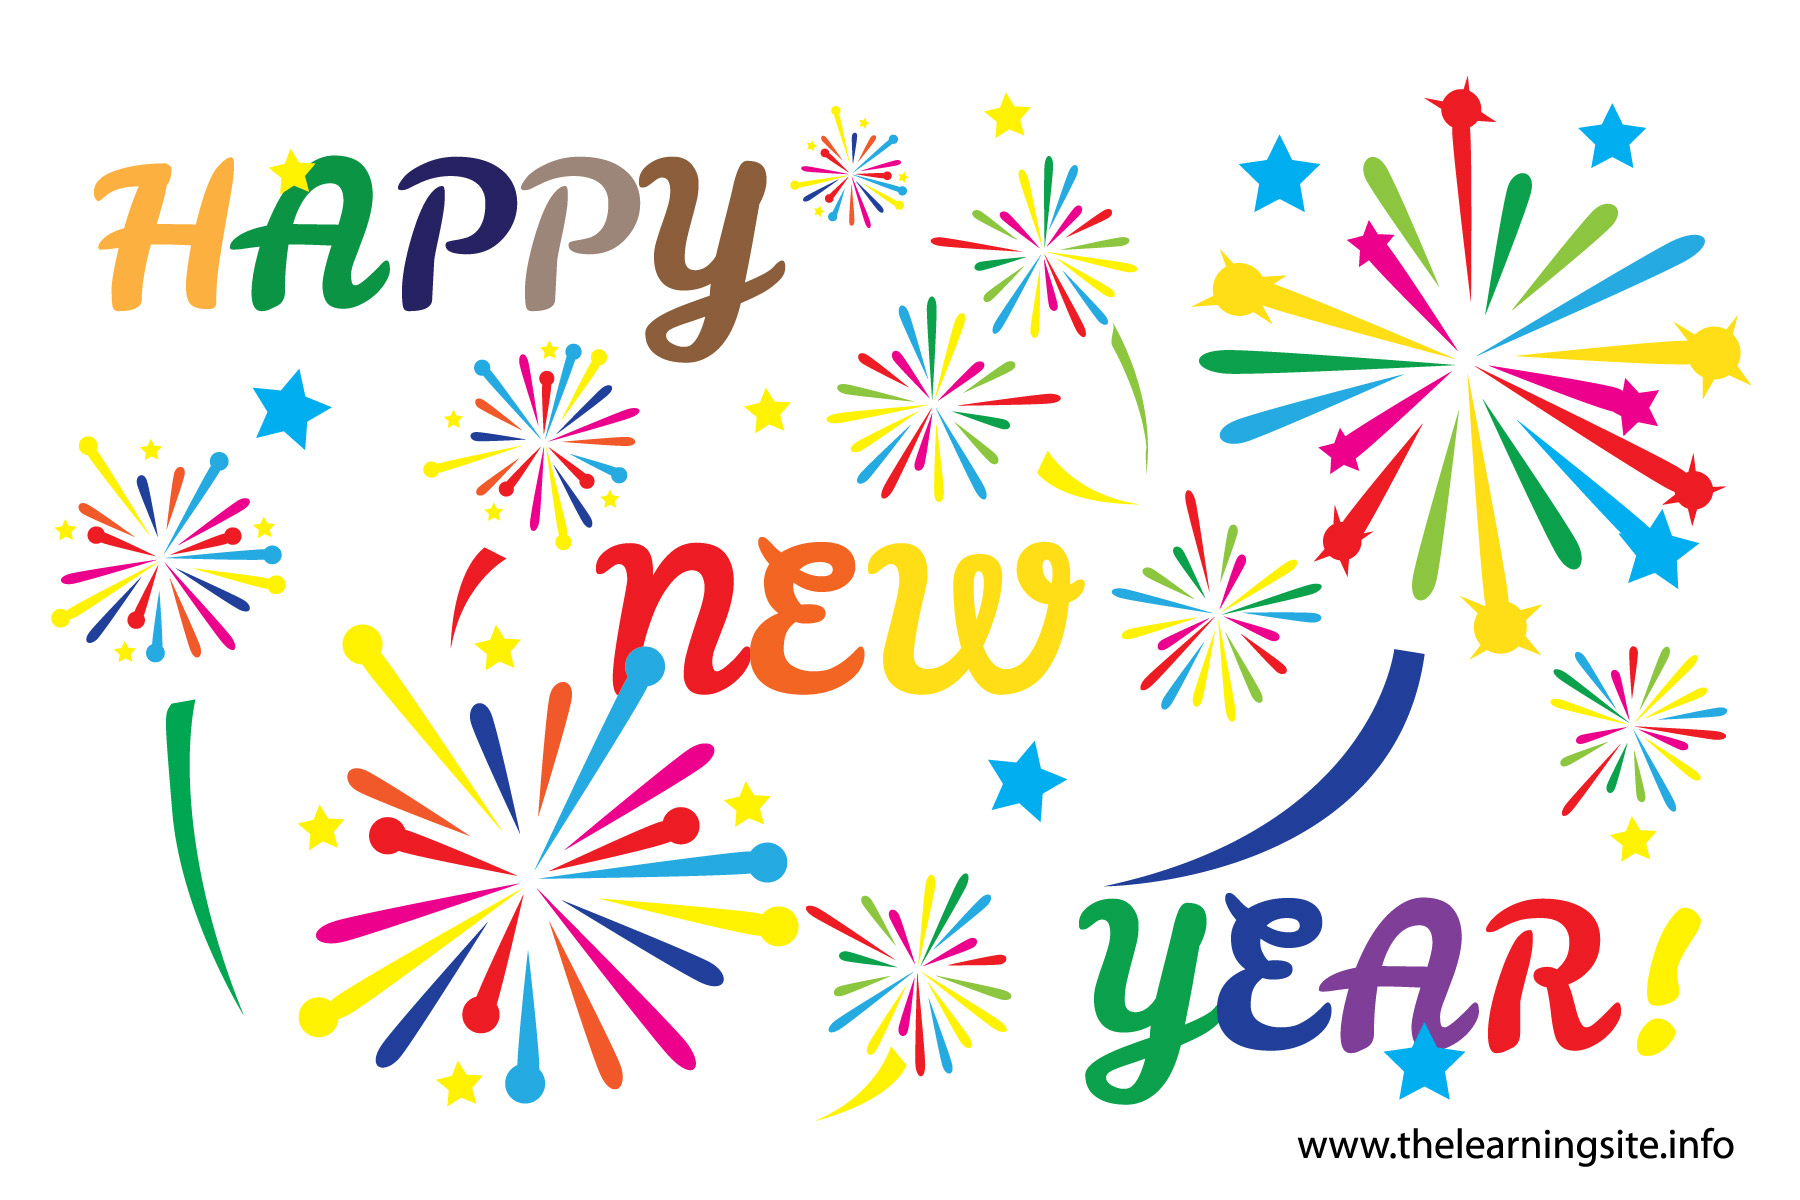 Happy New Year 2017 clipart. New Year